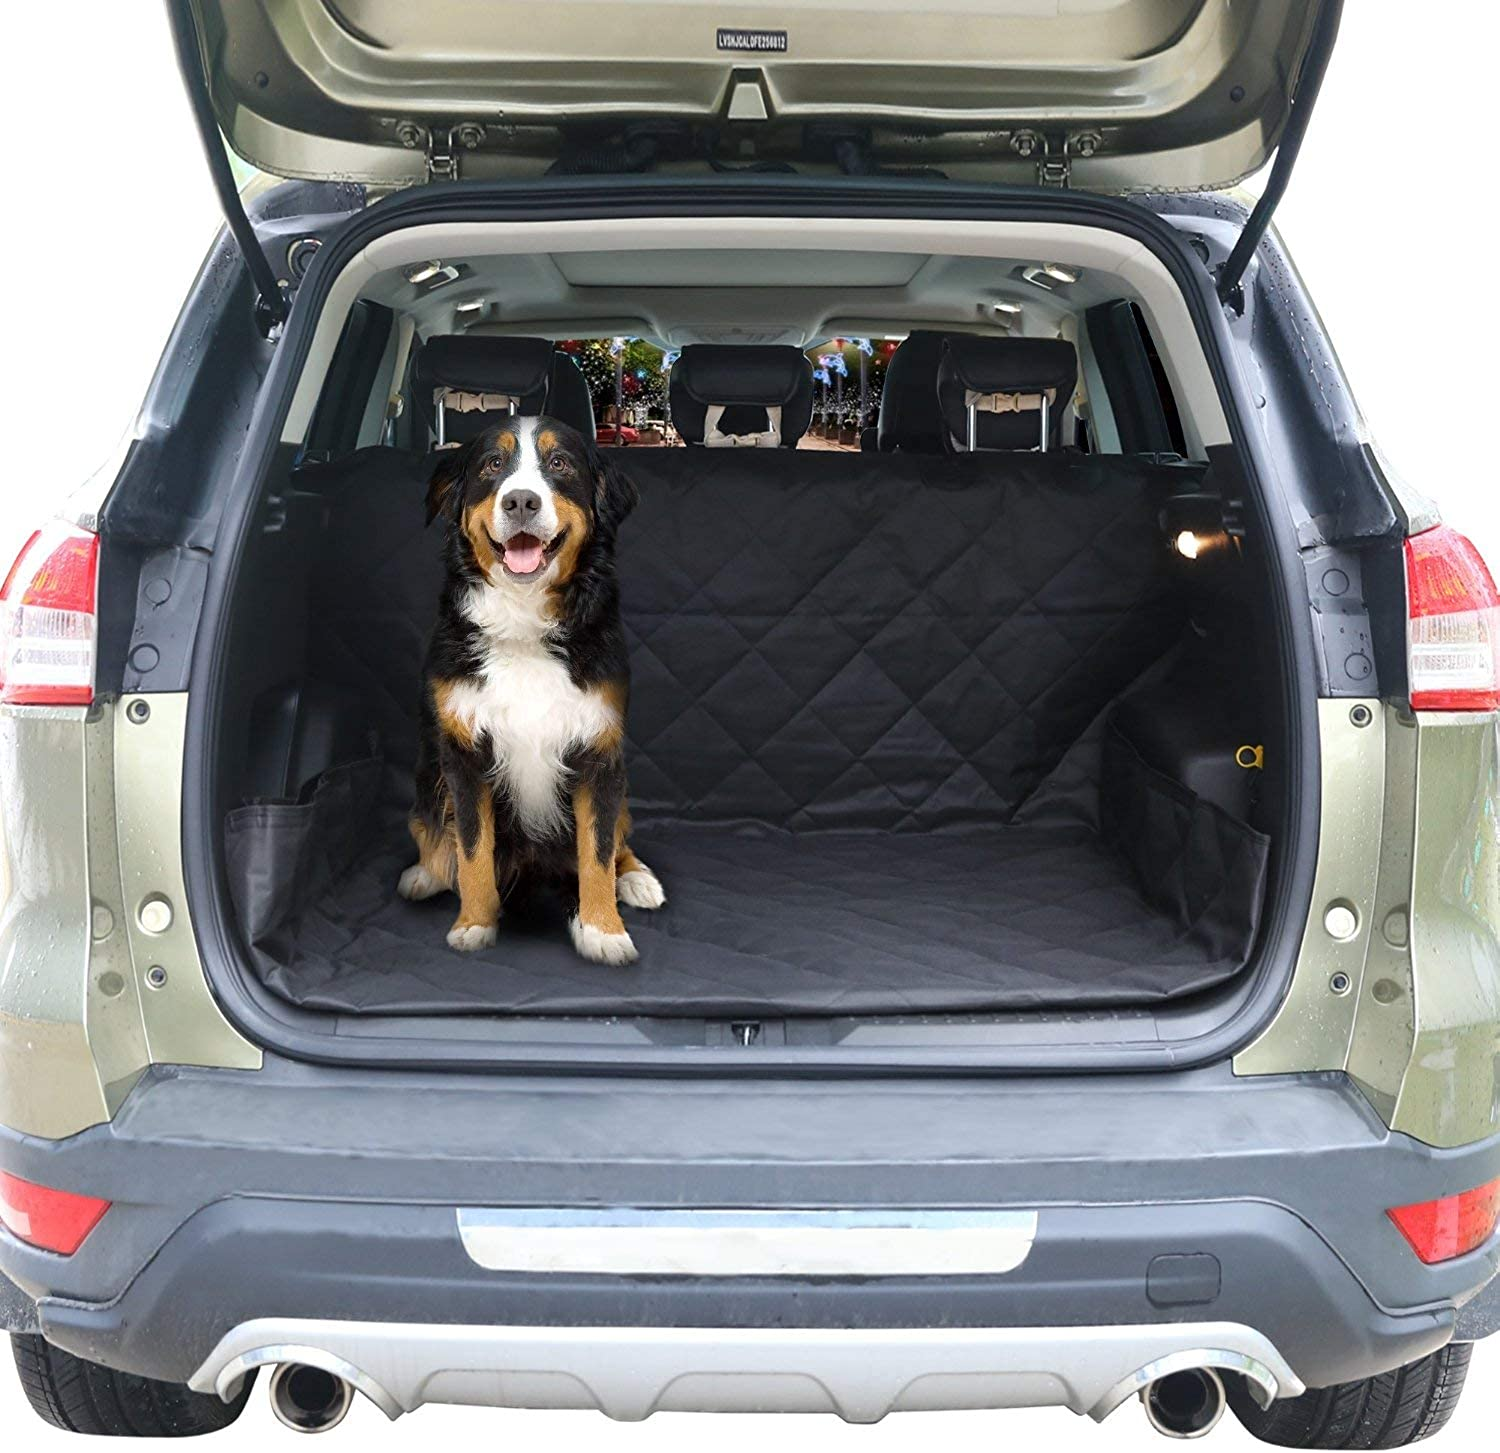 PAW WOW Pet Cargo Liner for SUVs, Vans, Jeep, and Trucks I Heavy Duty Waterproof Material, Non Slip Base I Predect Trunk Cargo from Scratches and Dirts